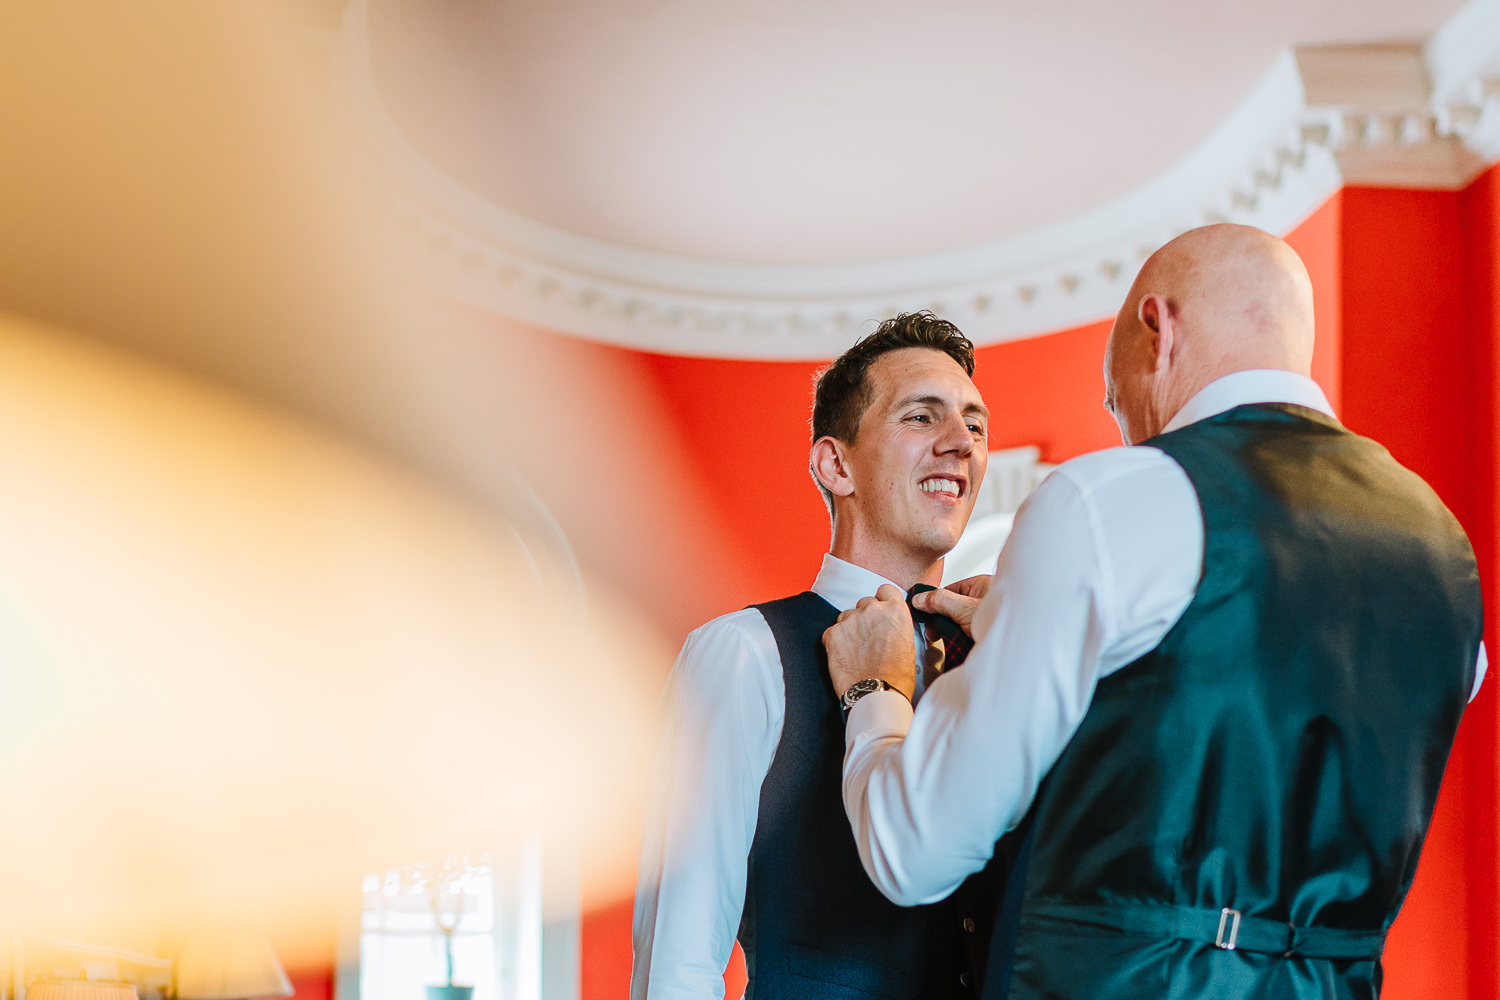 The groom having his tie done by his father.